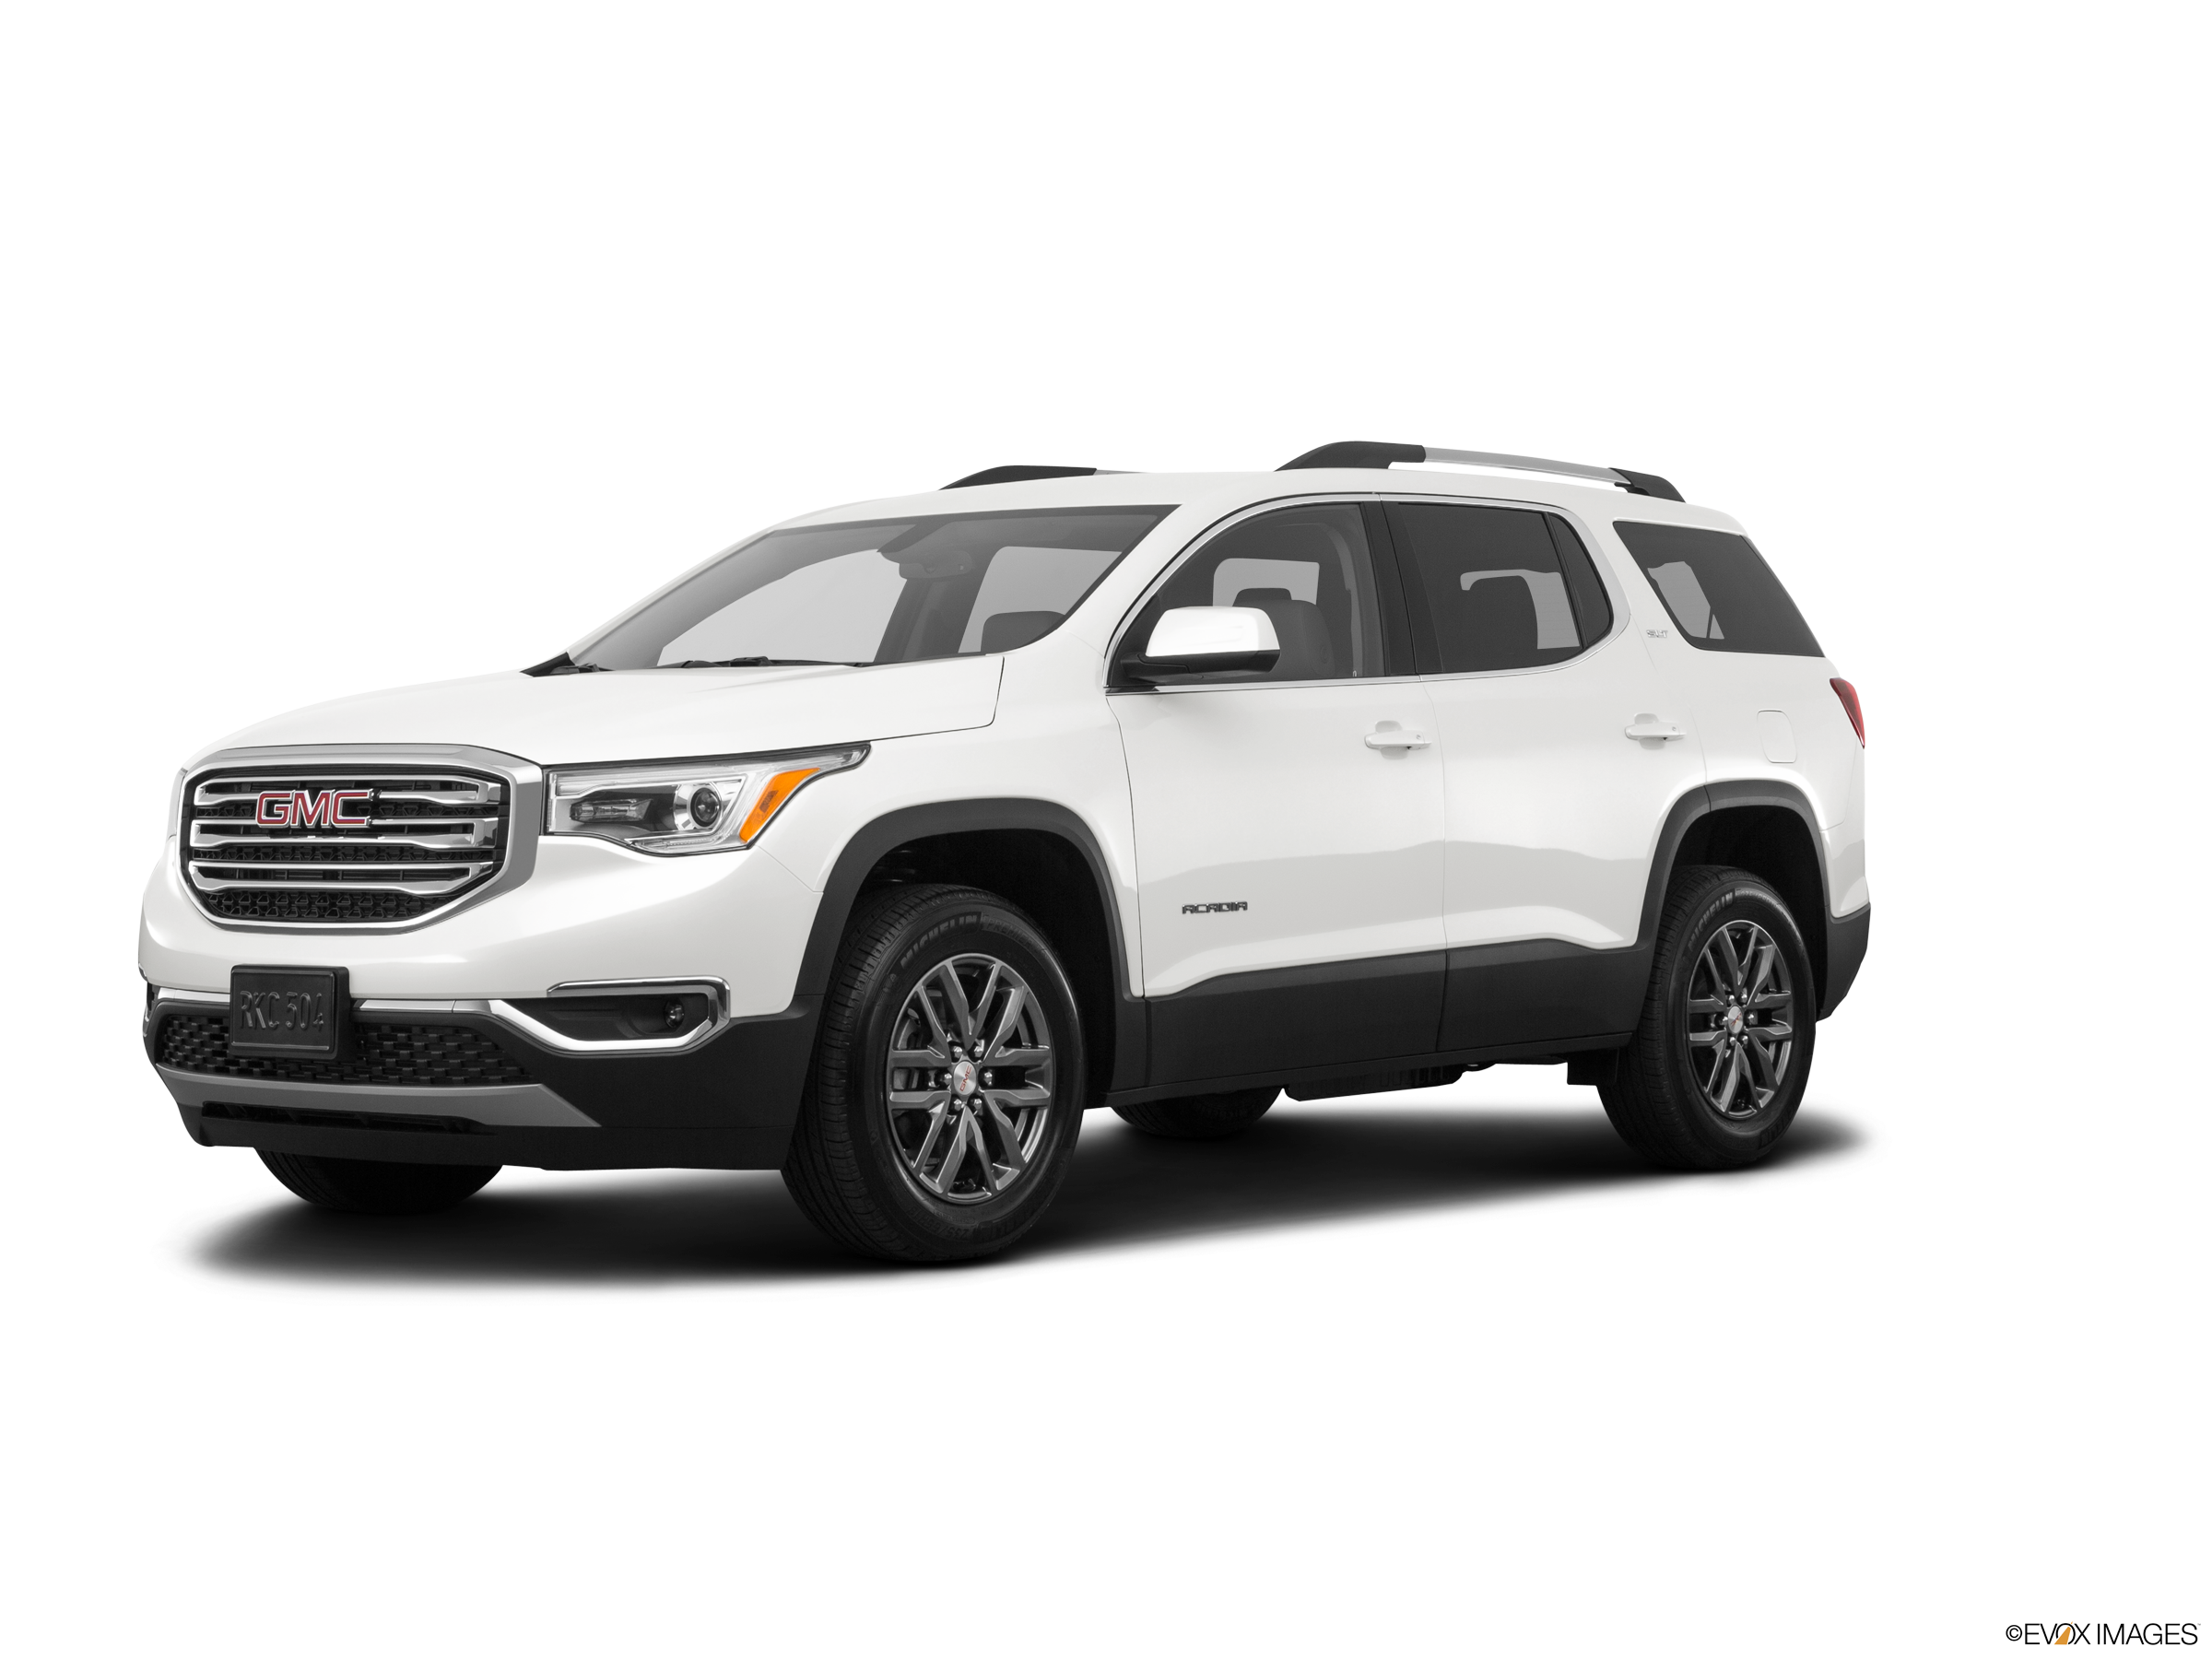 2017 Gmc Acadia Values Cars For Sale Kelley Blue Book